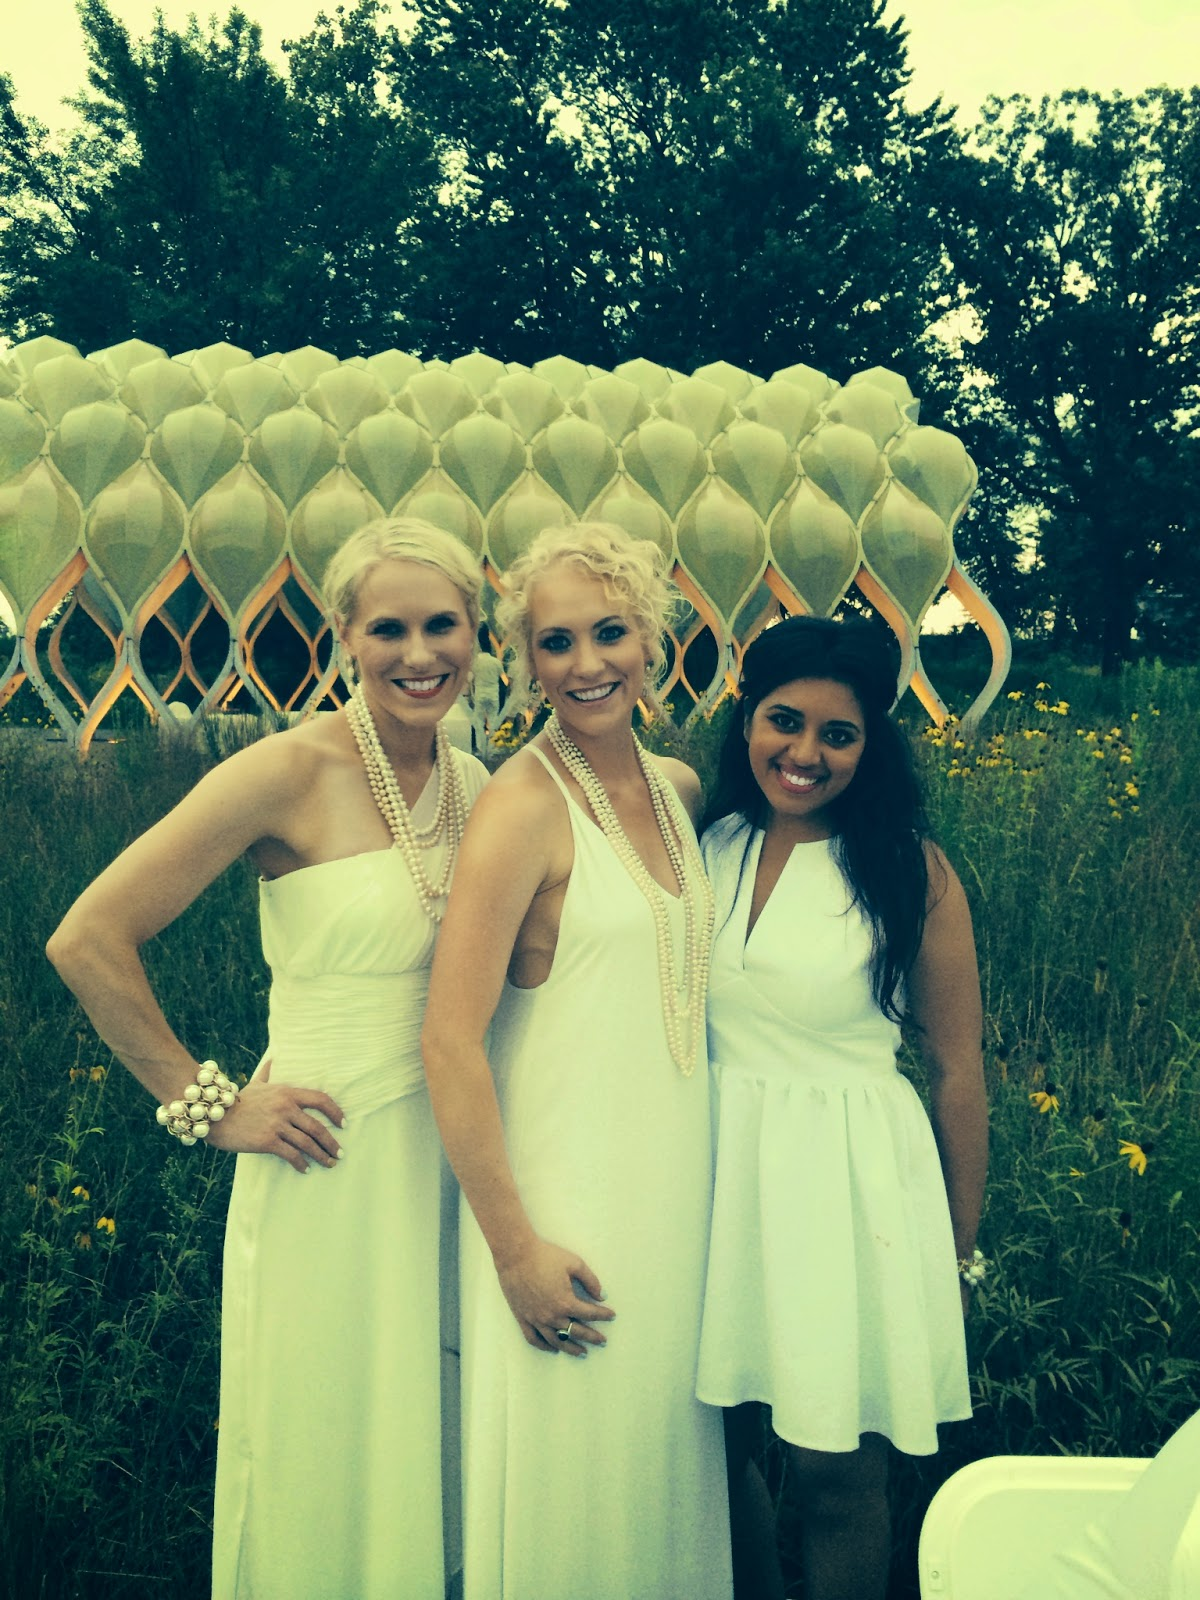 Diner en Blanc: The 'Dub Girls